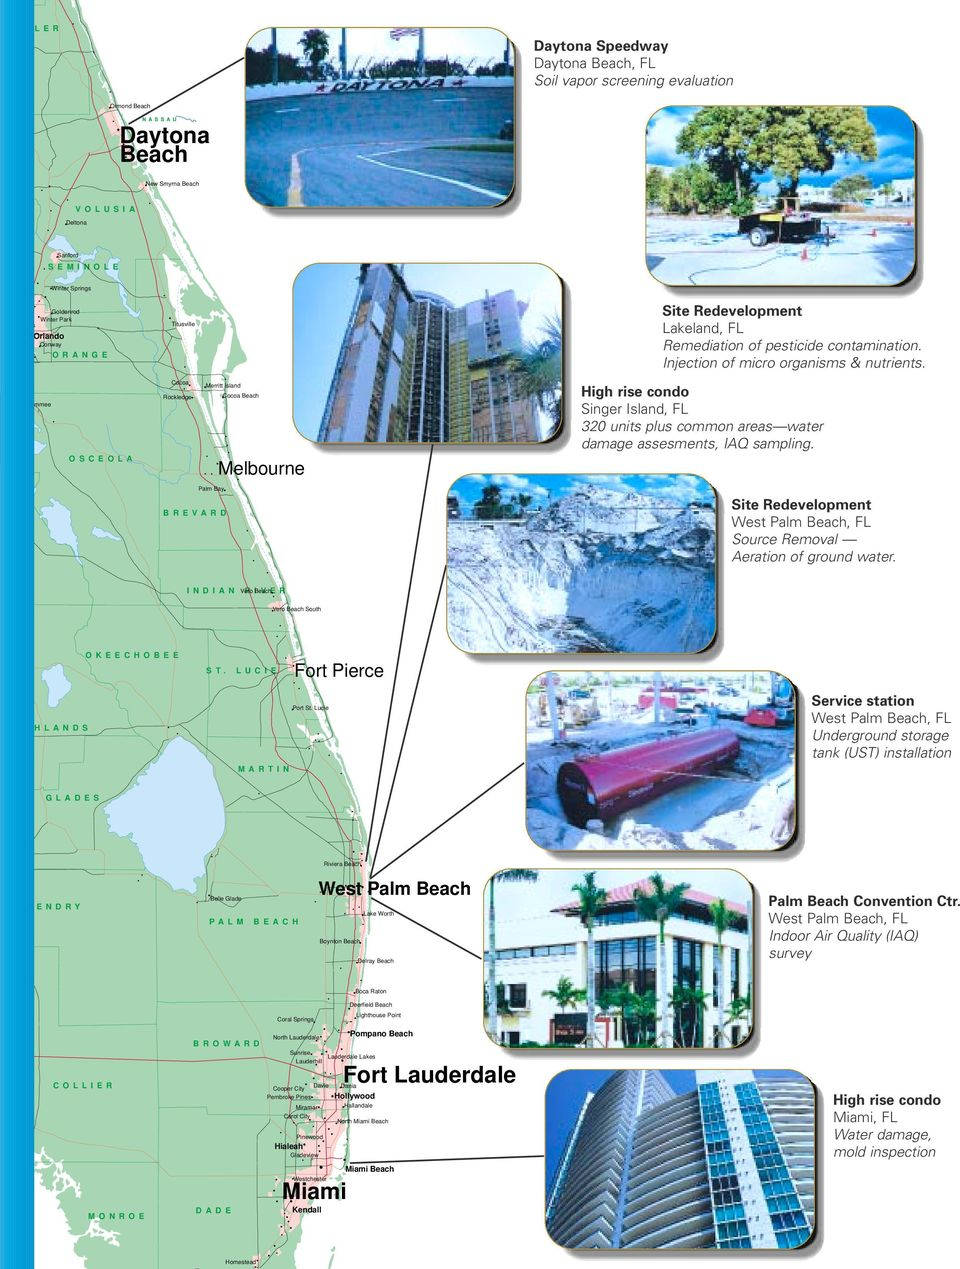 ssimmee O S C E O L A Cocoa Rockledge Merritt Island Cocoa Beach Melbourne High rise condo Singer Island, FL 320 units plus common areas water damage assesments, IAQ sampling.